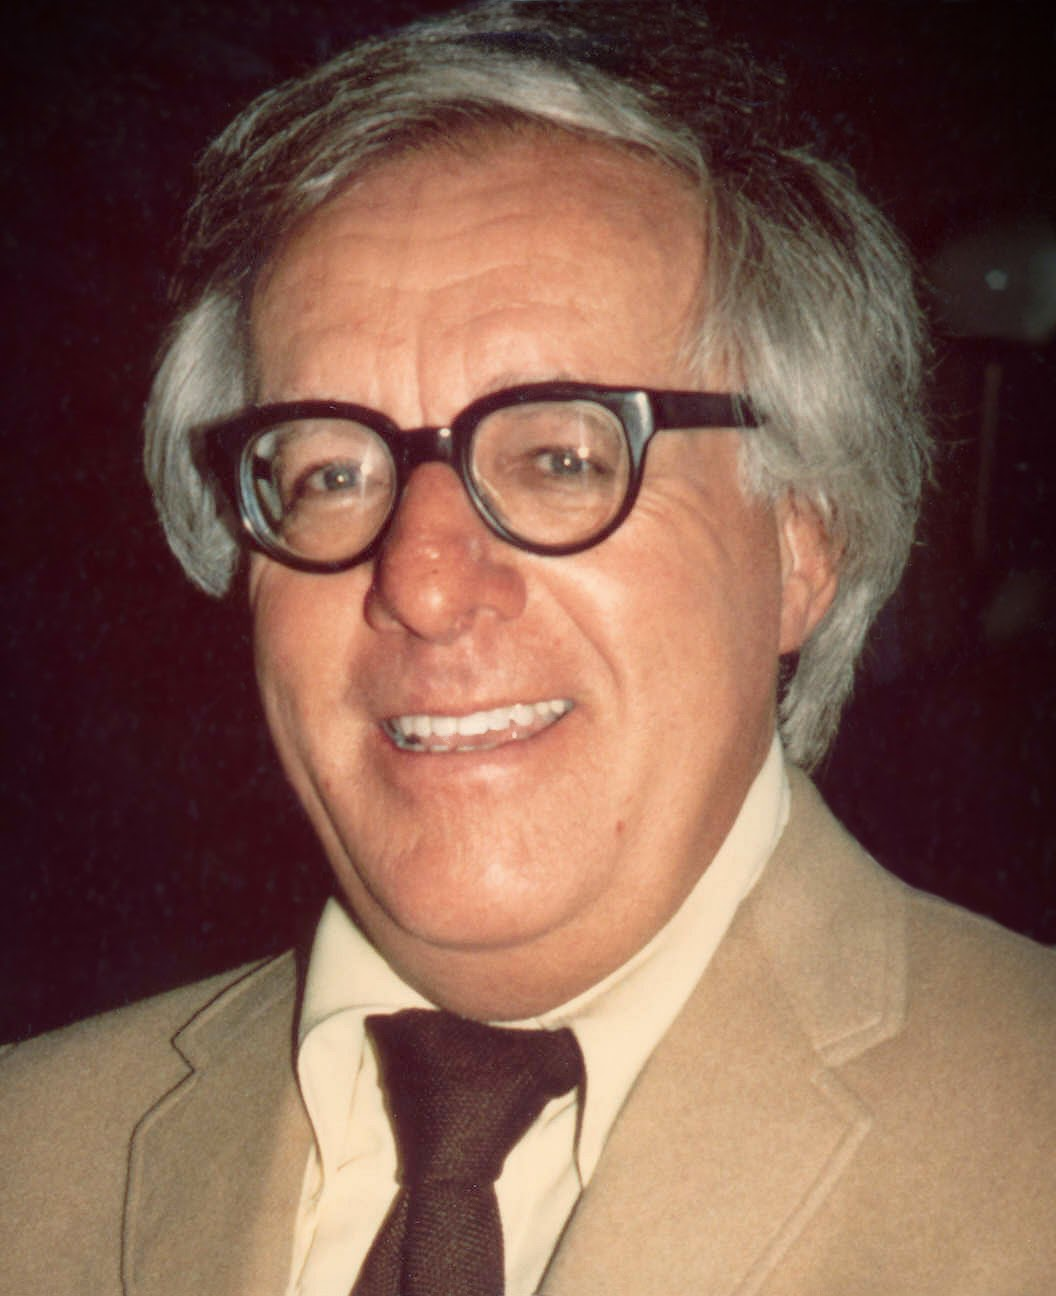 Picture - Ray Bradbury from http://upload.wikimedia.org/wikipedia/commons/6/69/Ray_Bradbury_(1975)_-cropped-.jpg